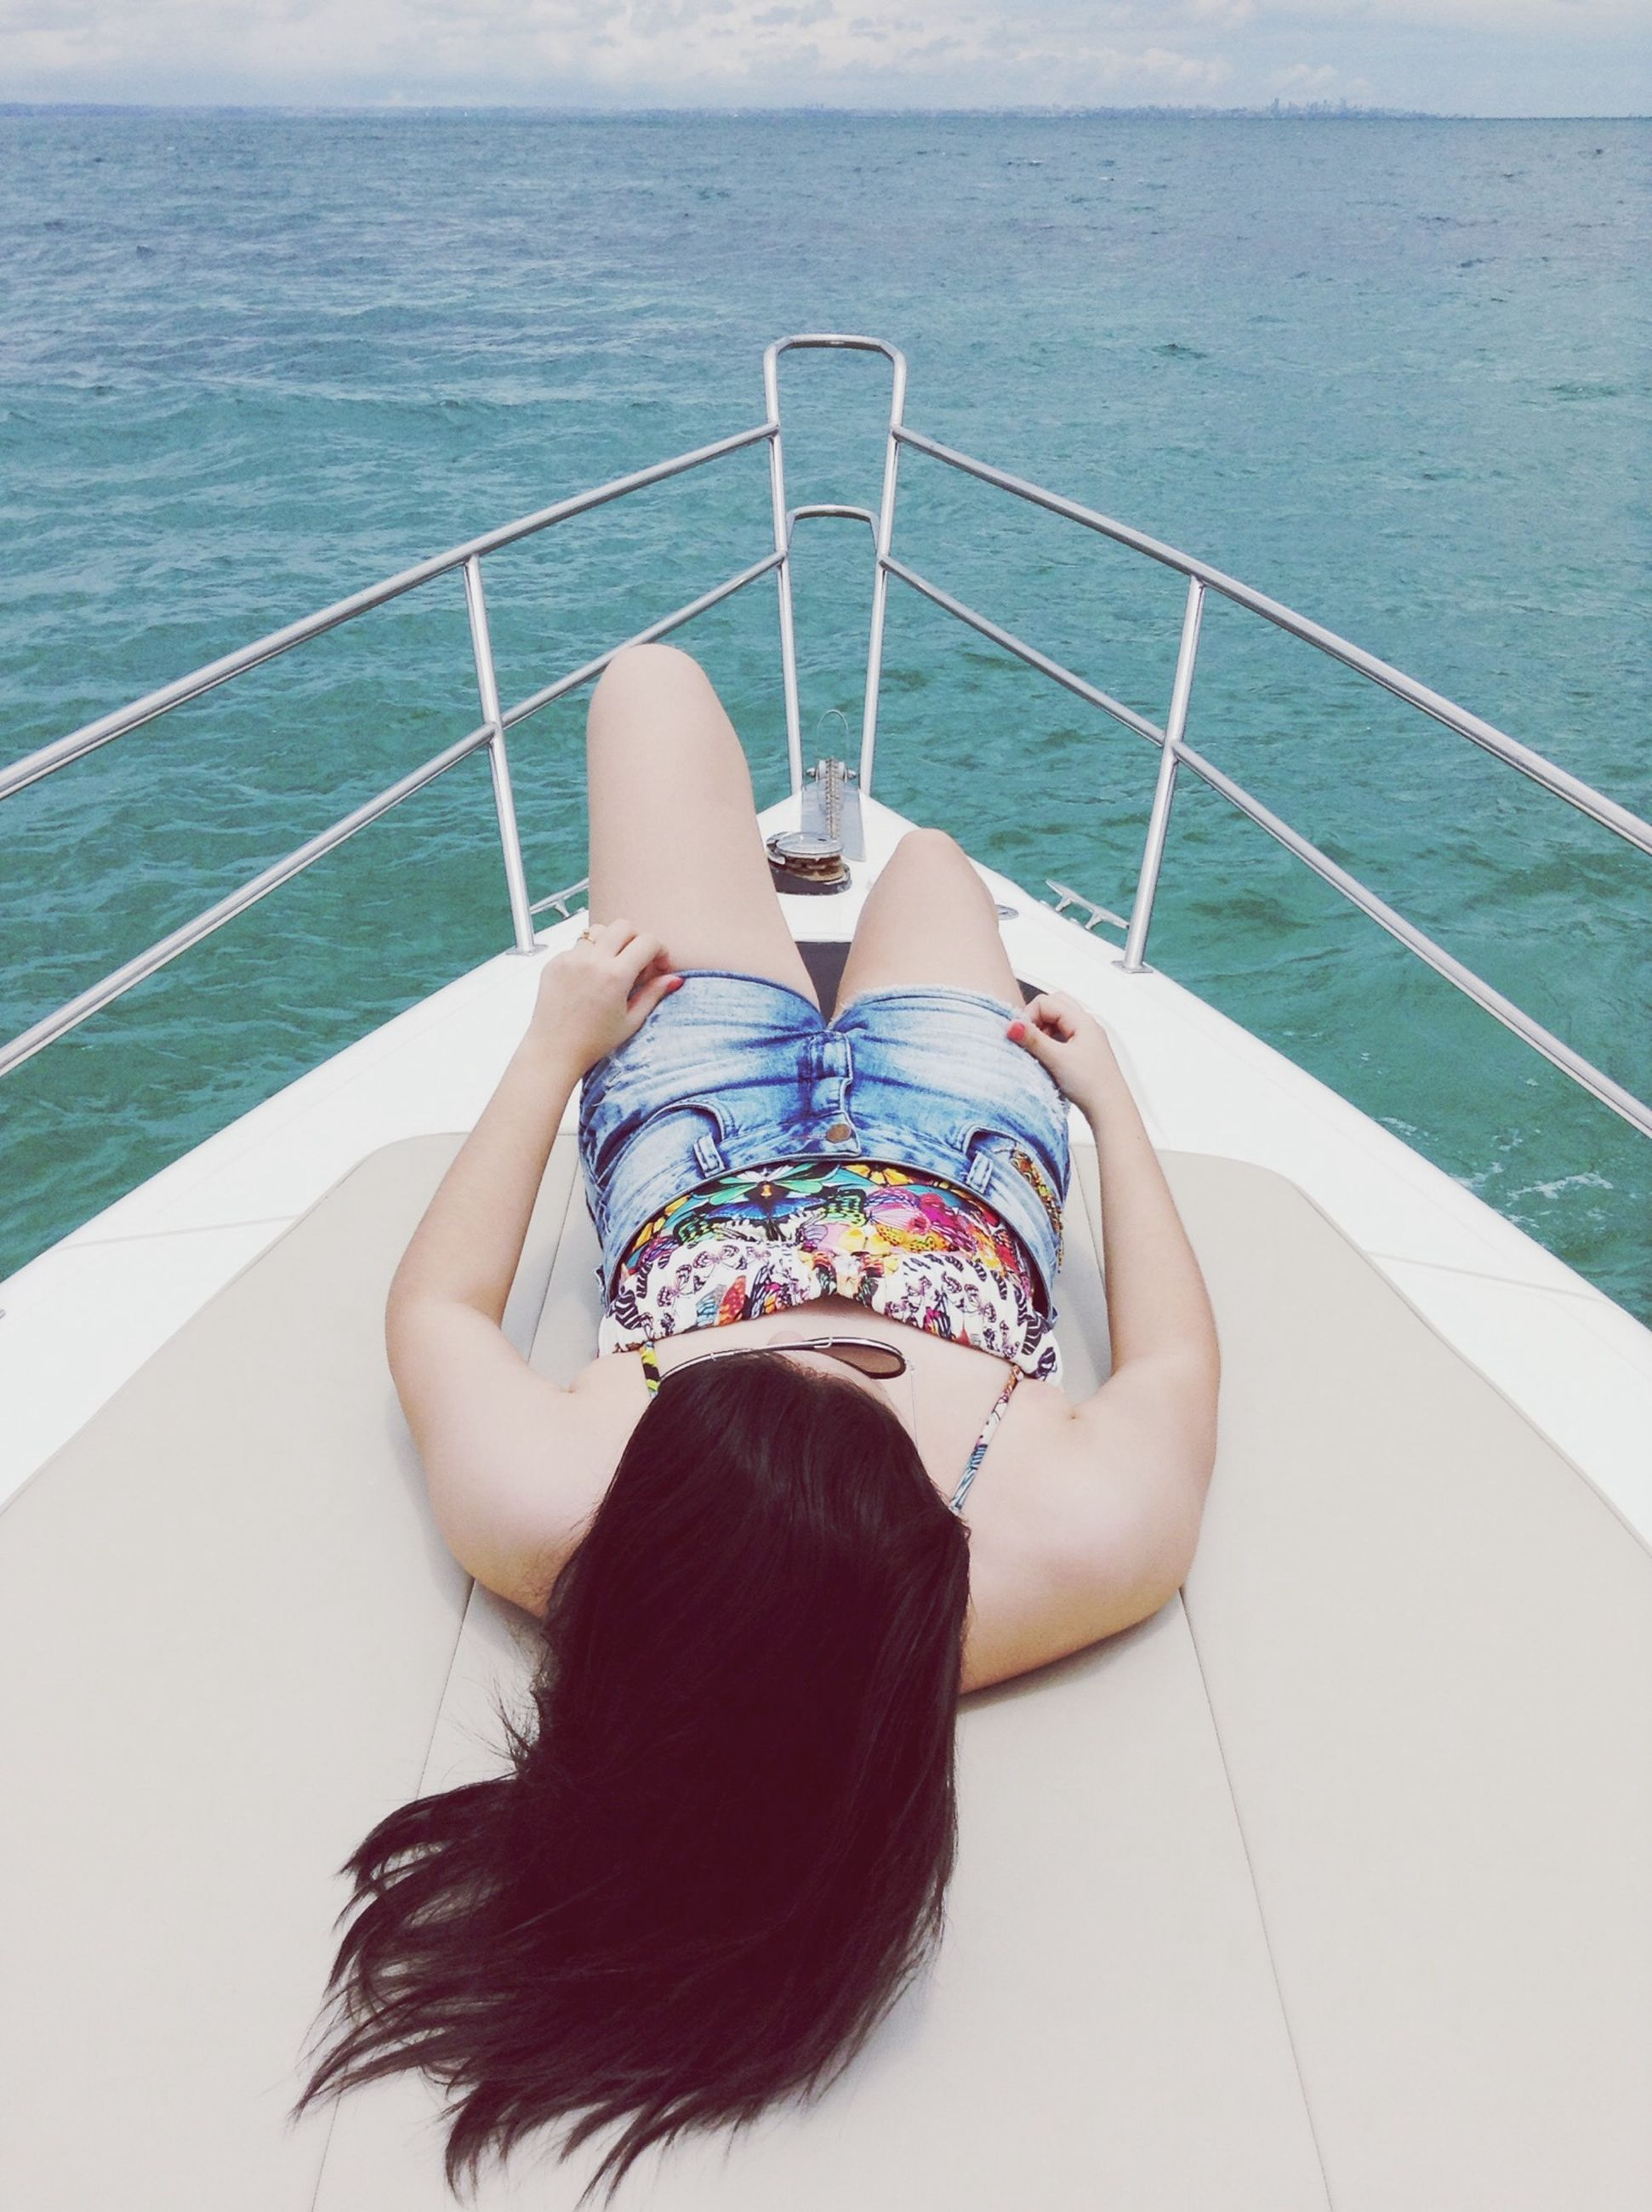 water, leisure activity, lifestyles, sea, vacations, sitting, person, relaxation, high angle view, sunlight, young adult, young women, summer, day, enjoyment, boat, outdoors, full length